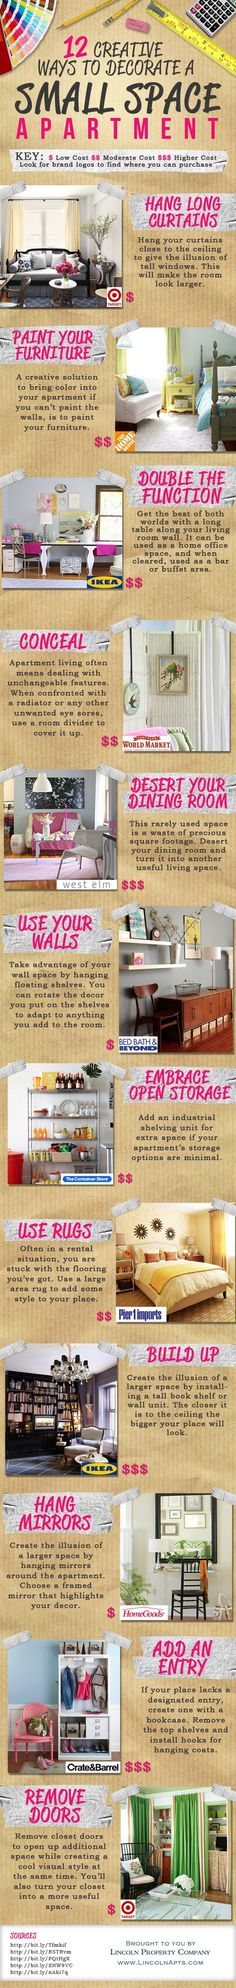 Small space decorating tips.